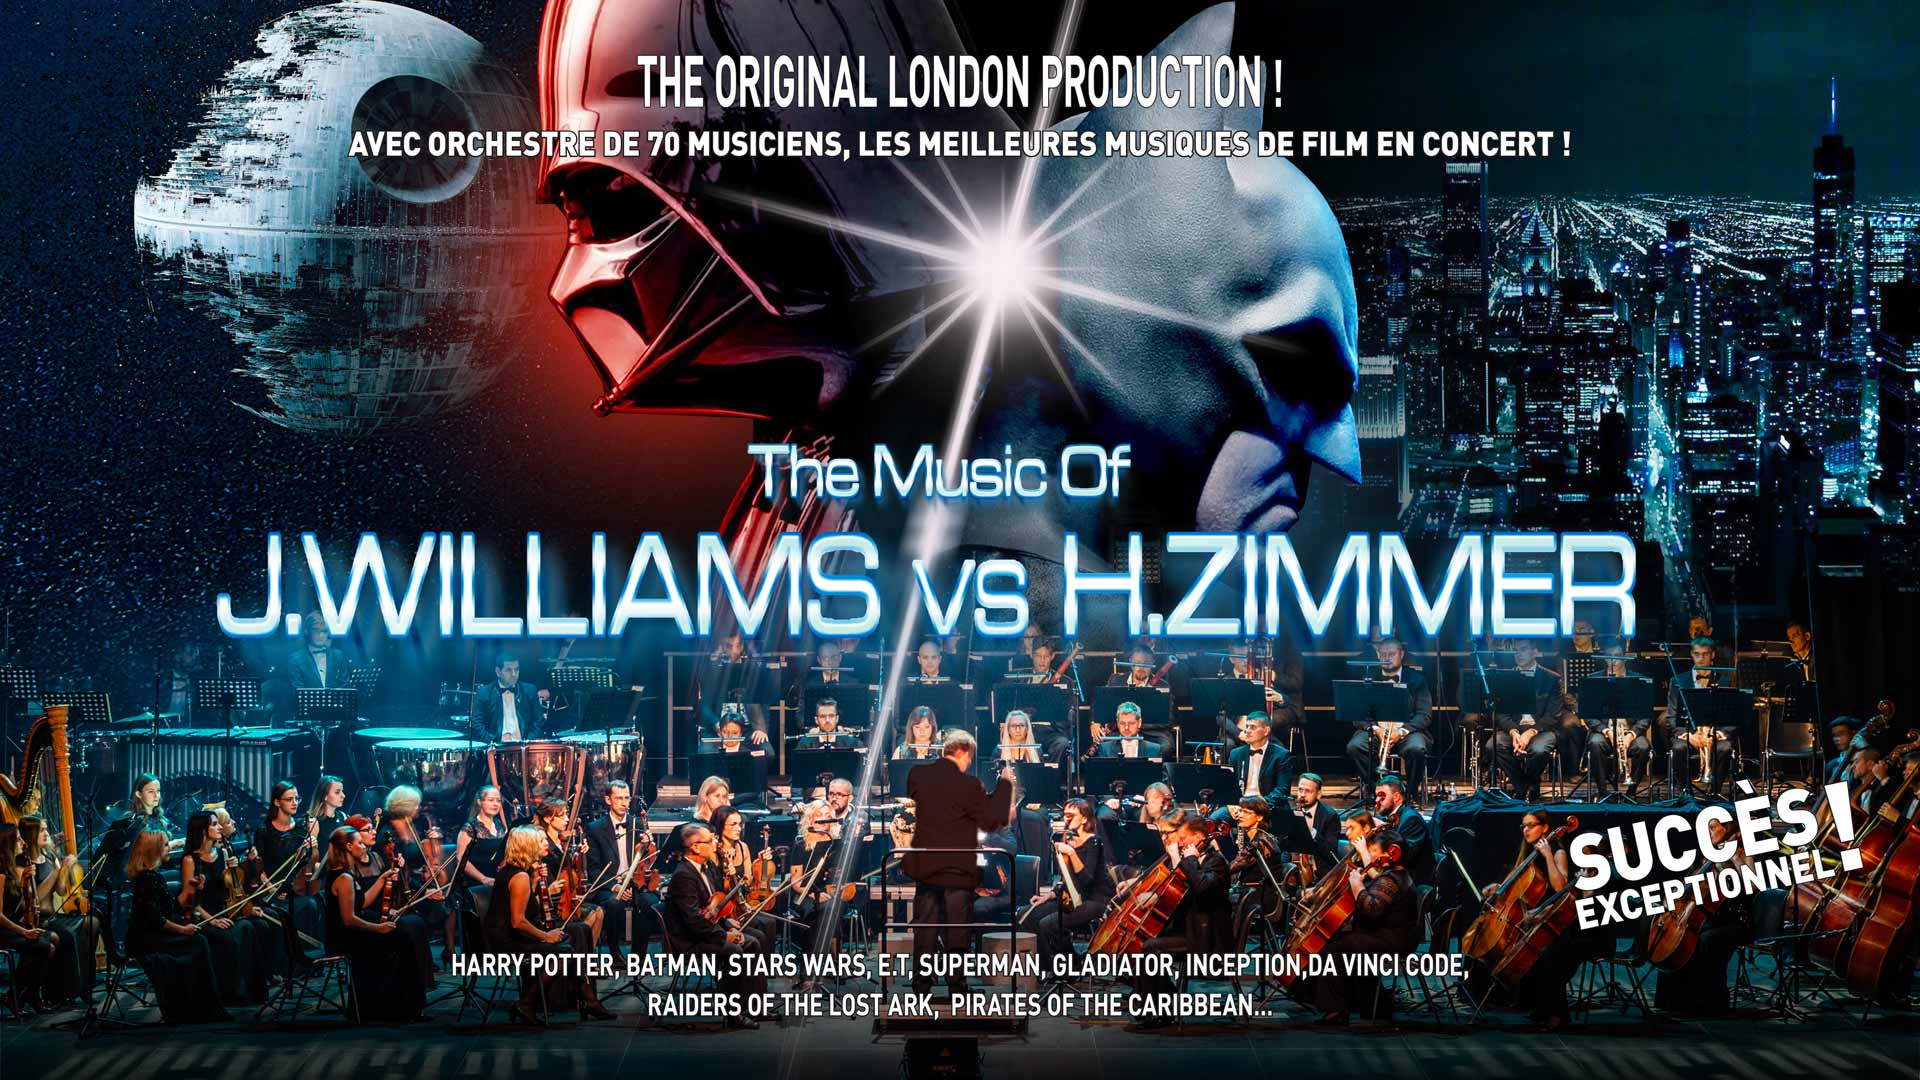 The Original Production, Hans Zimmer vs John Williams, Orchestre, 70 musiciens, meilleures musiques de film en concert, succès exceptionnel.